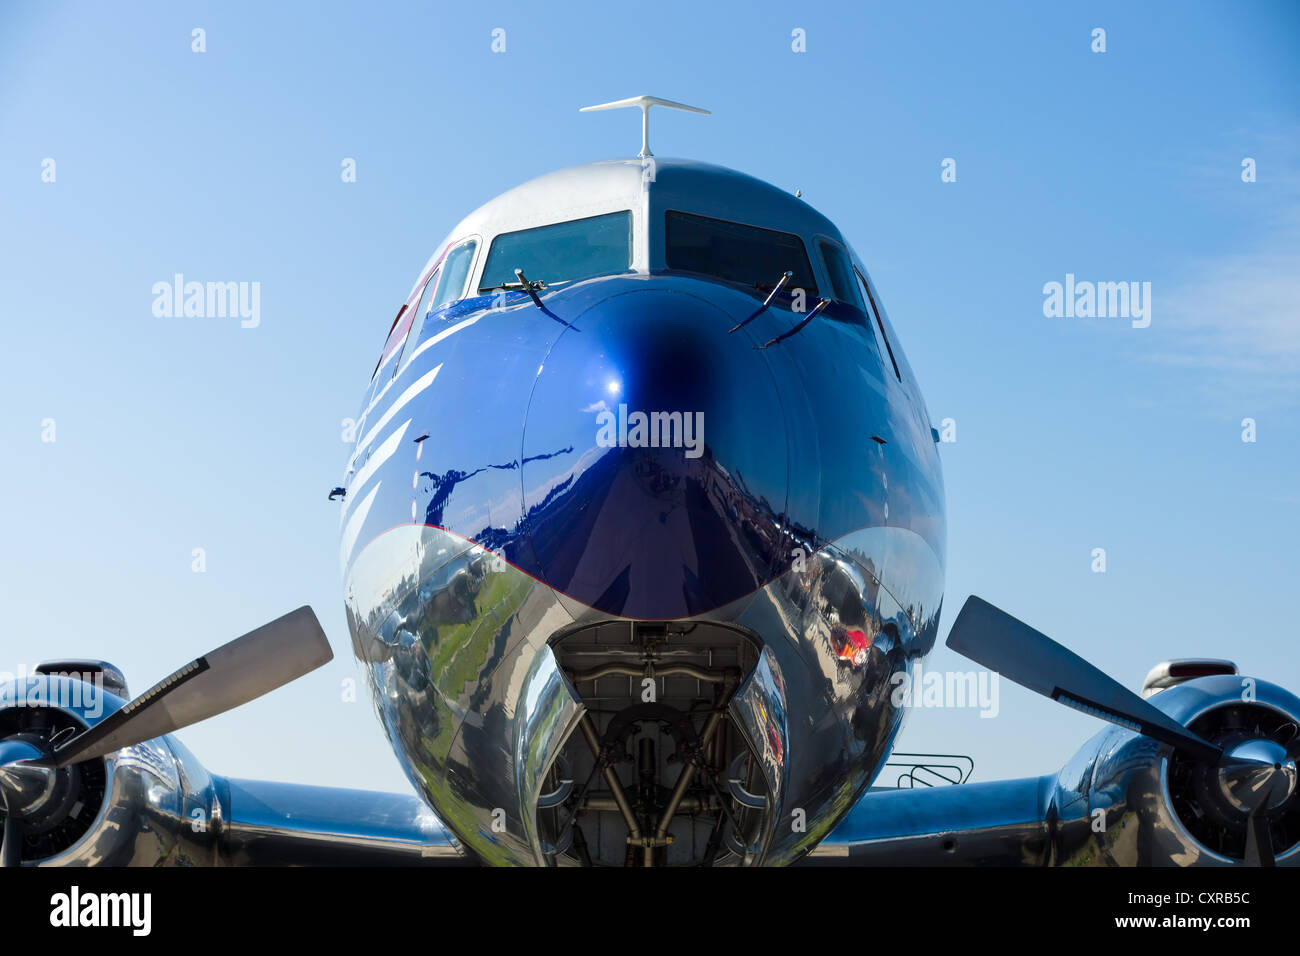 The Douglas DC-6B is a piston-powered airliner - Stock Image